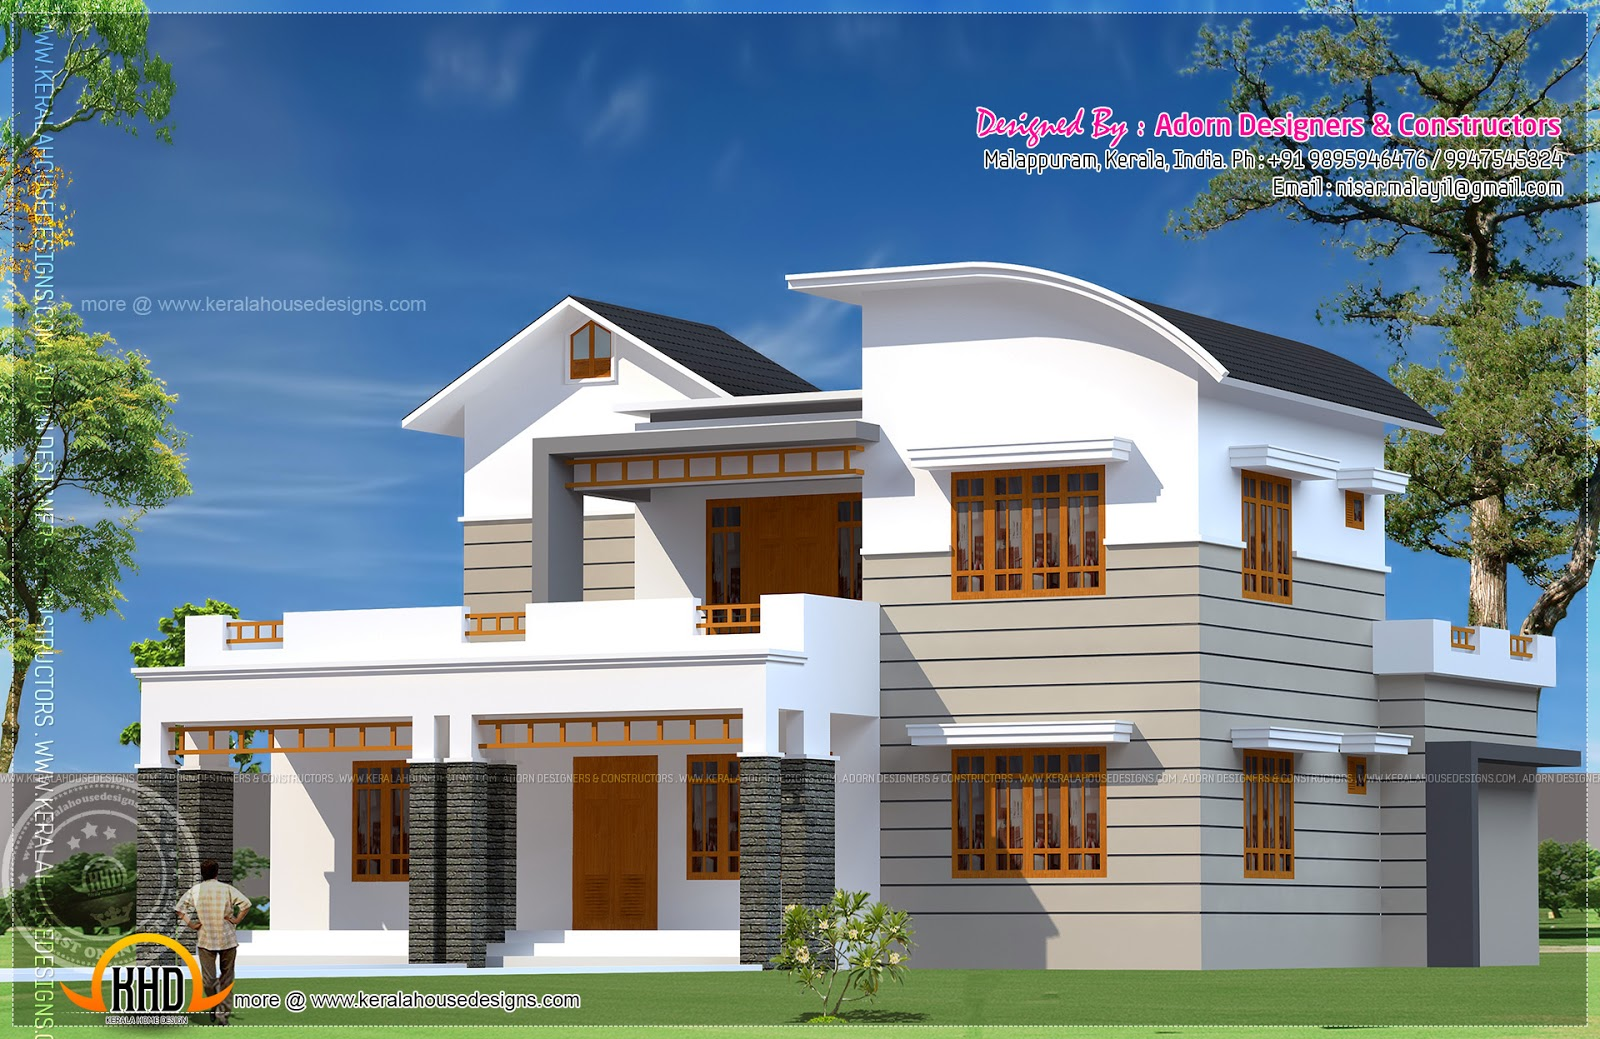 5 bedroom house exterior kerala home design and floor plans for 5 bedroom house designs